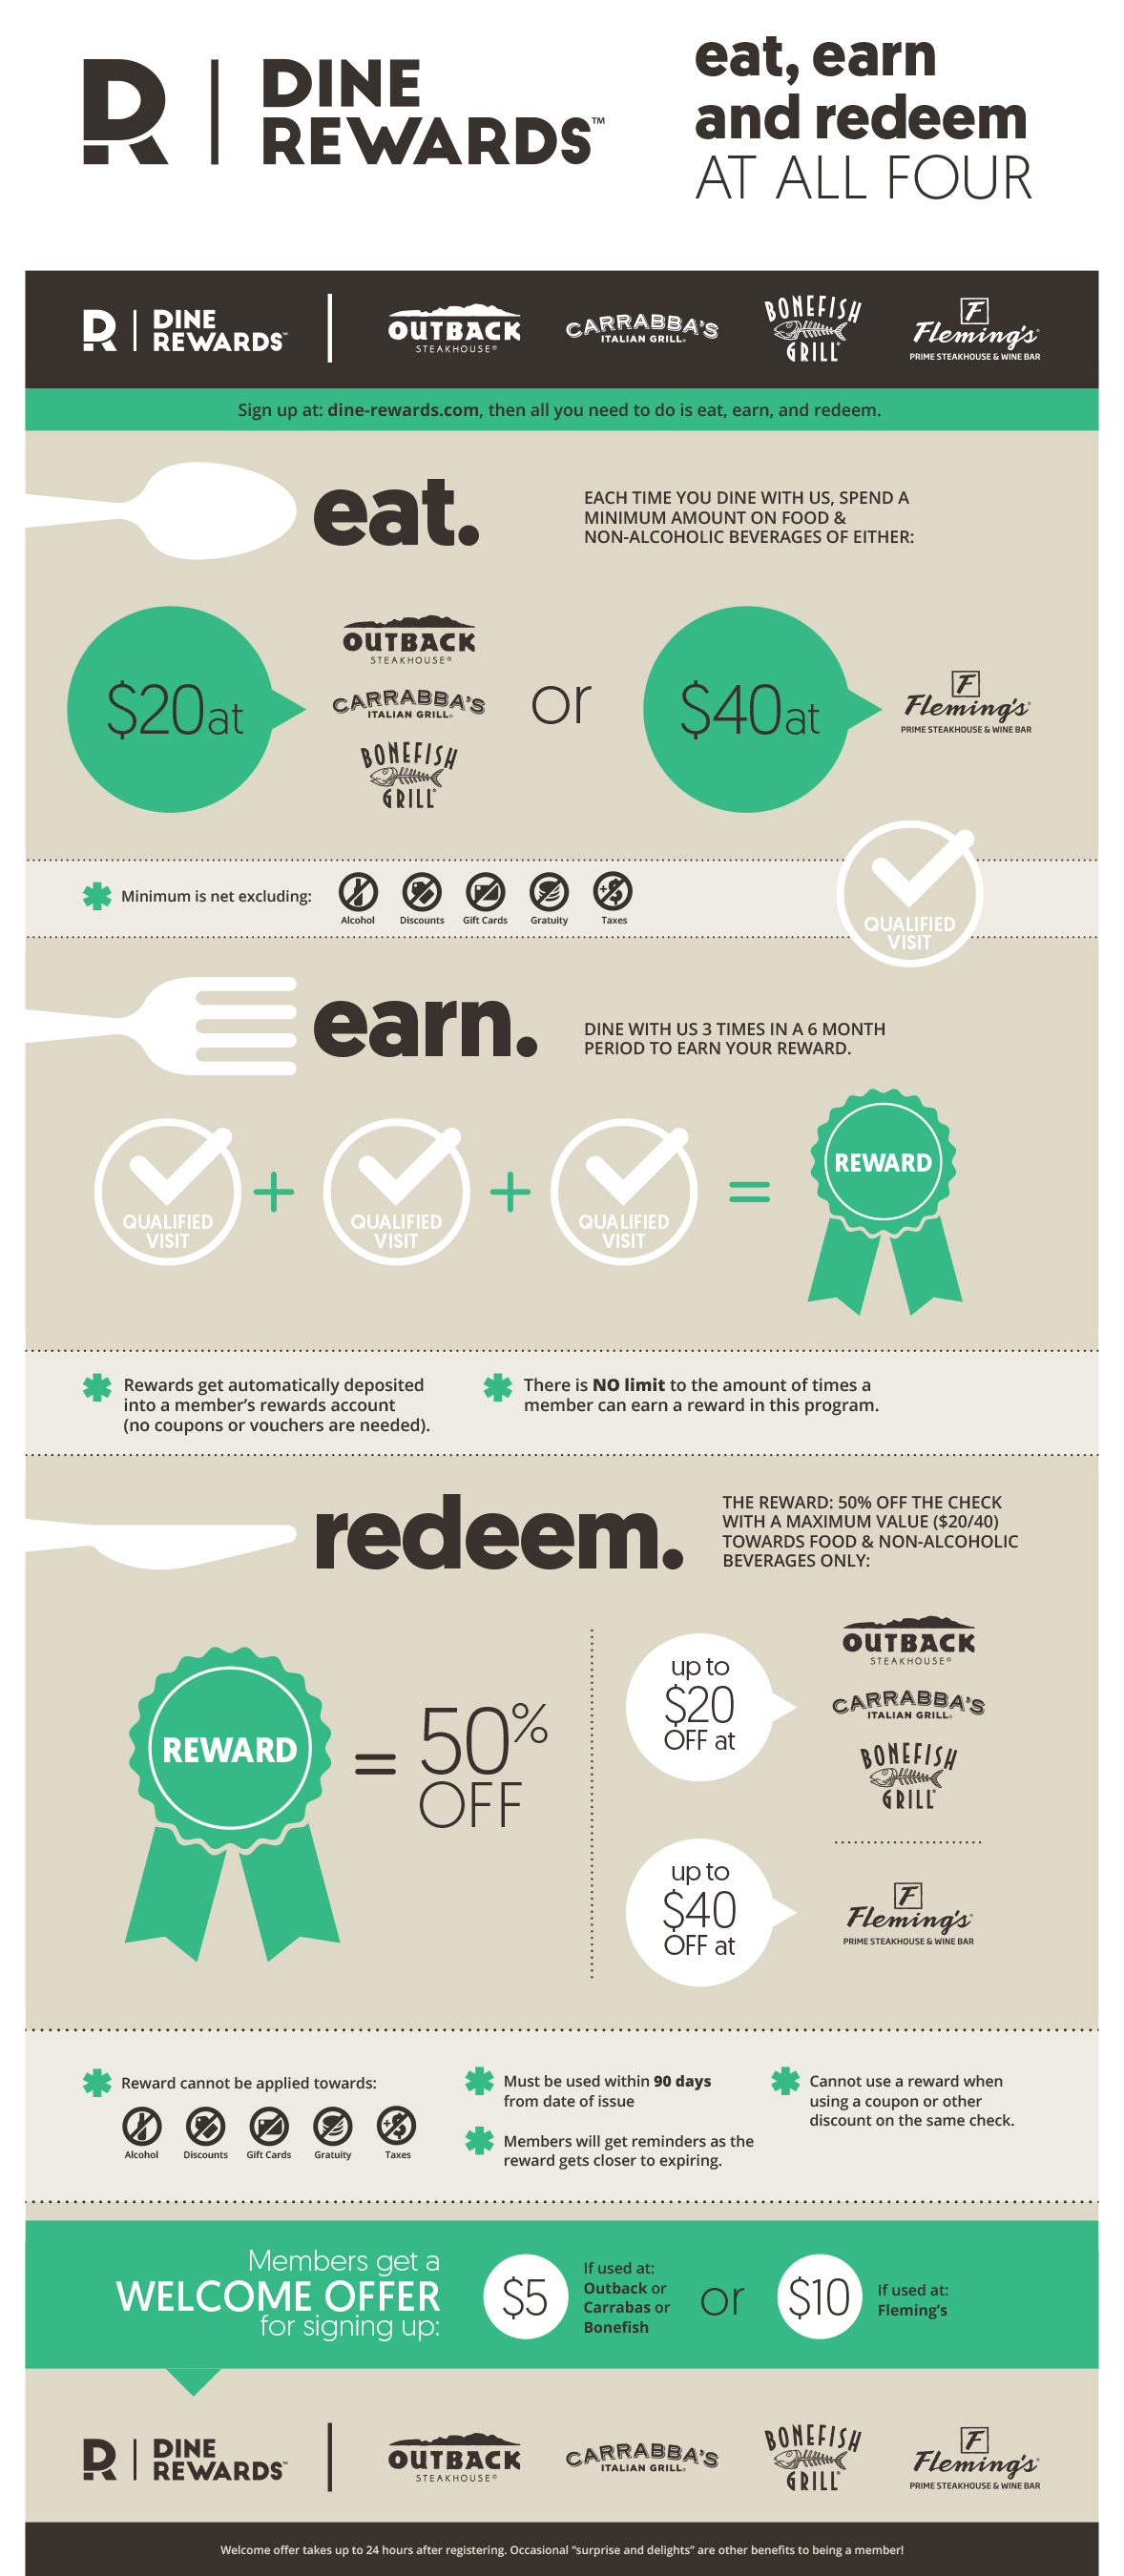 Dine Rewards Loyalty Program Launches Nationwide At Four Of Americas Favorite Restaurants